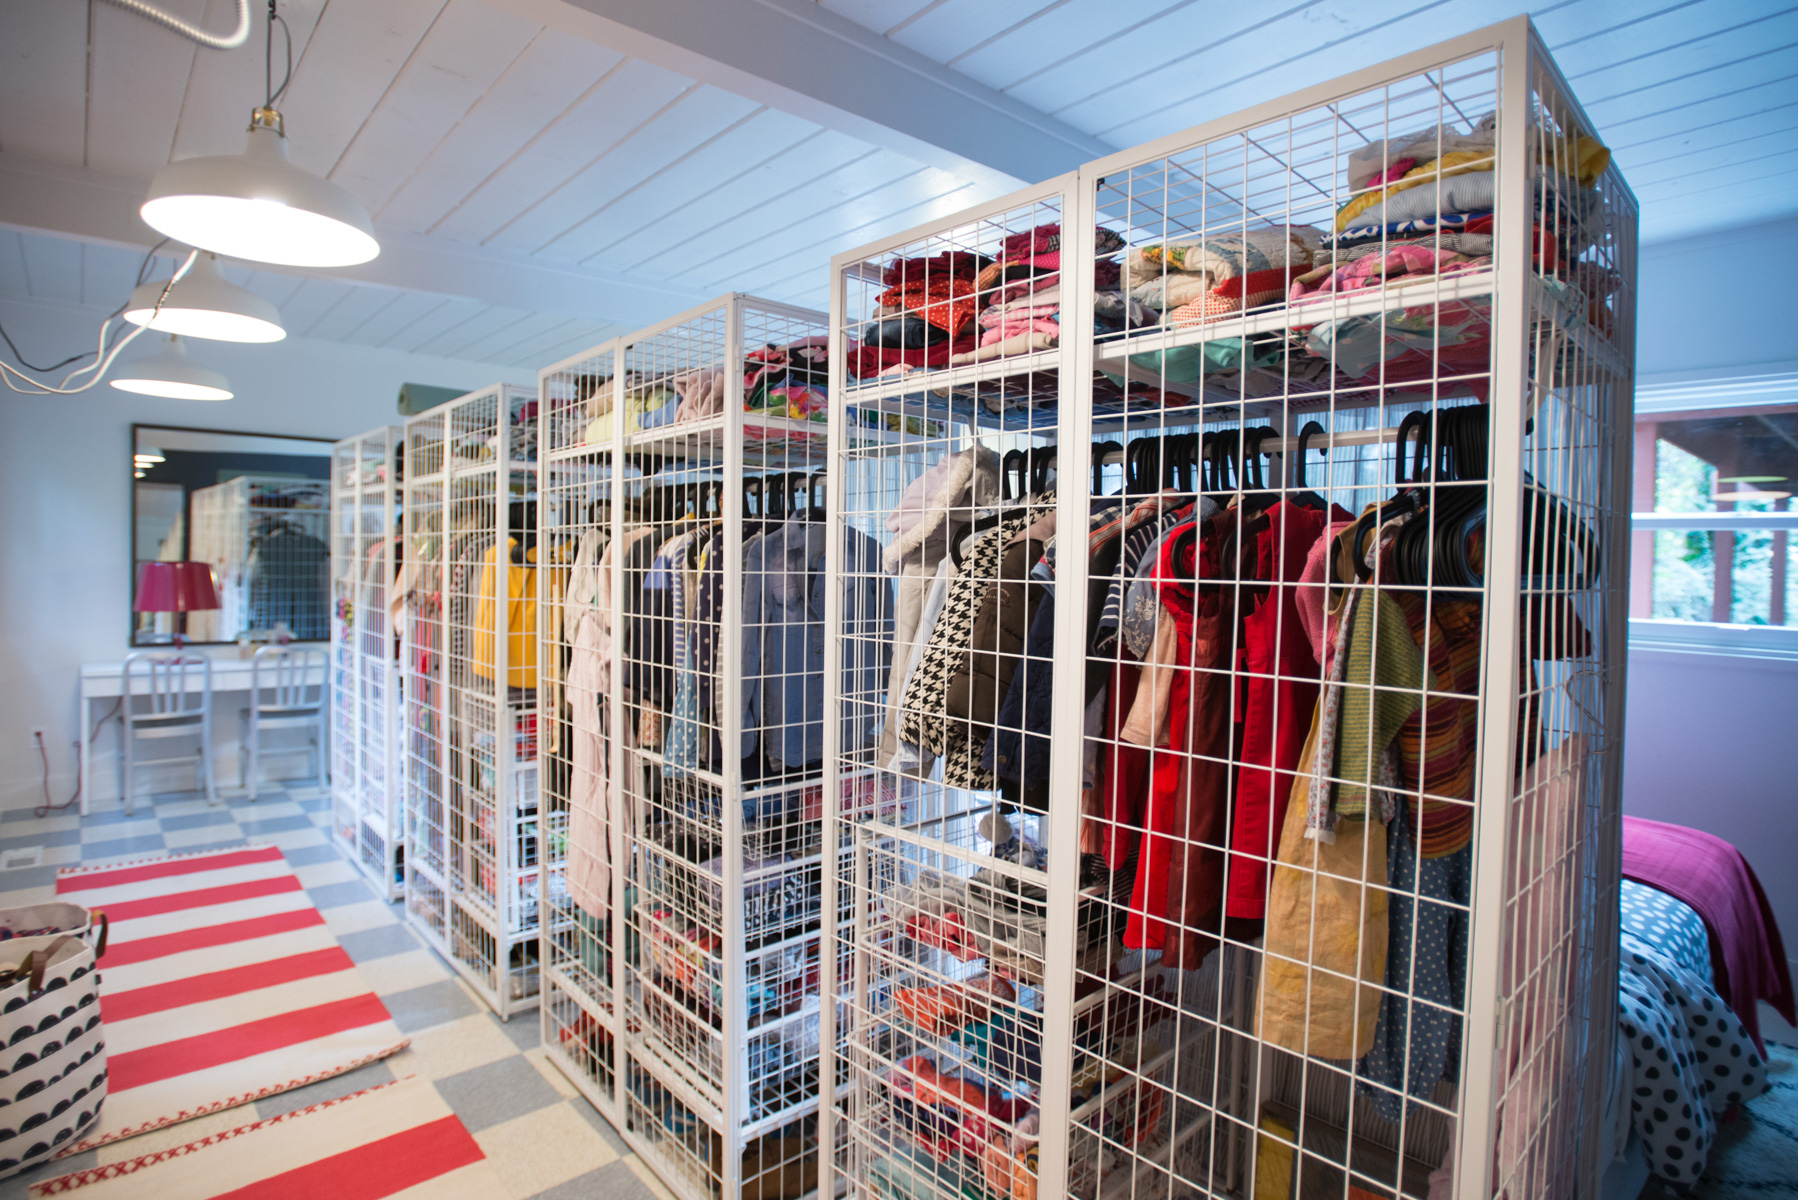 3-part system for organizing kid clothes and closets